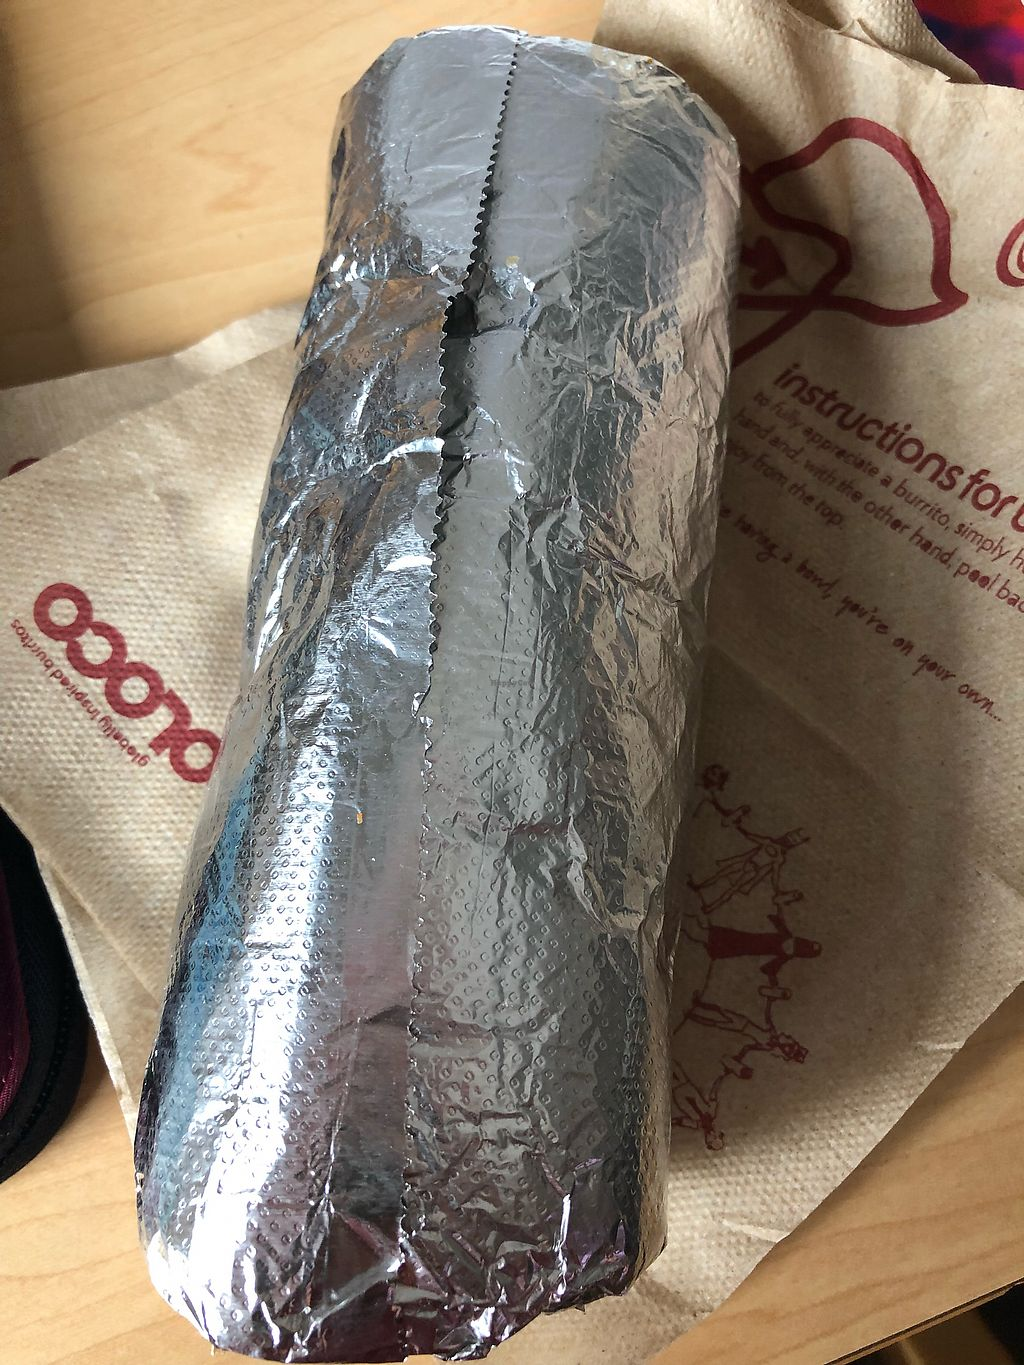 """Photo of Boloco  by <a href=""""/members/profile/Tamy"""">Tamy</a> <br/>Regular sized burrito  <br/> March 25, 2018  - <a href='/contact/abuse/image/115566/375613'>Report</a>"""